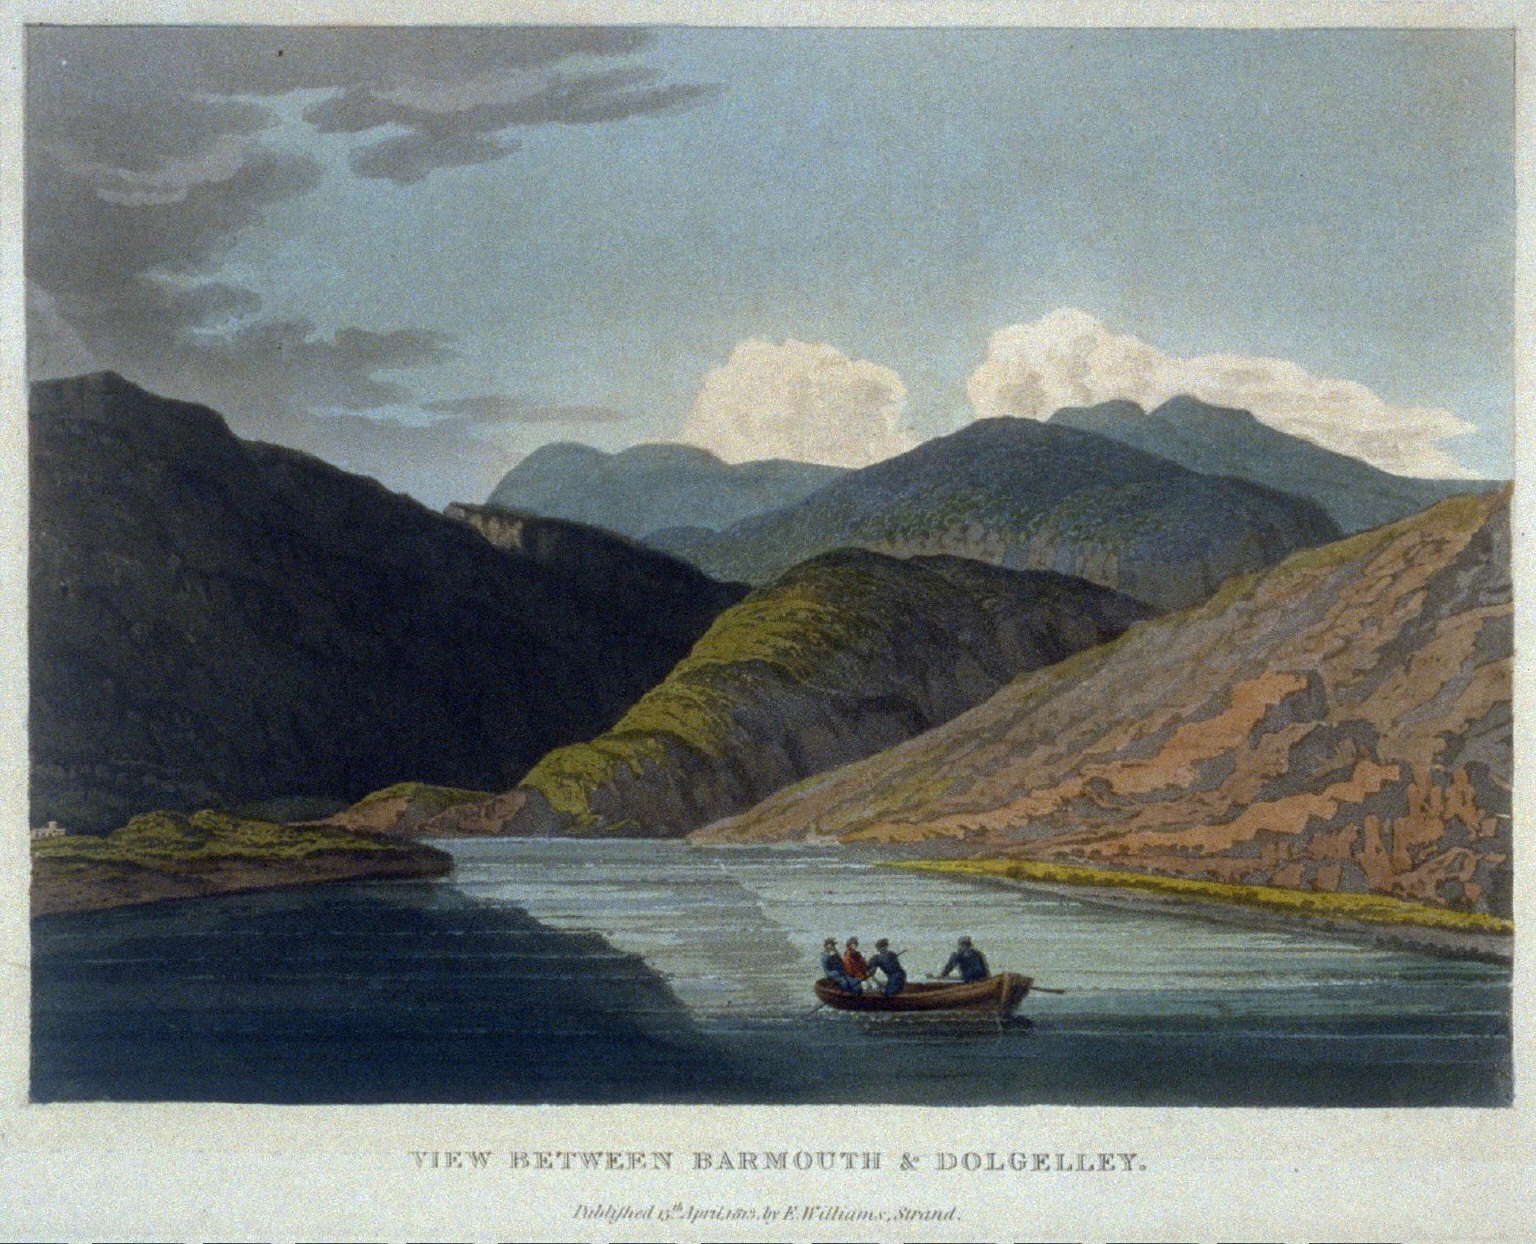 View between Bartmouth and Dolgelley